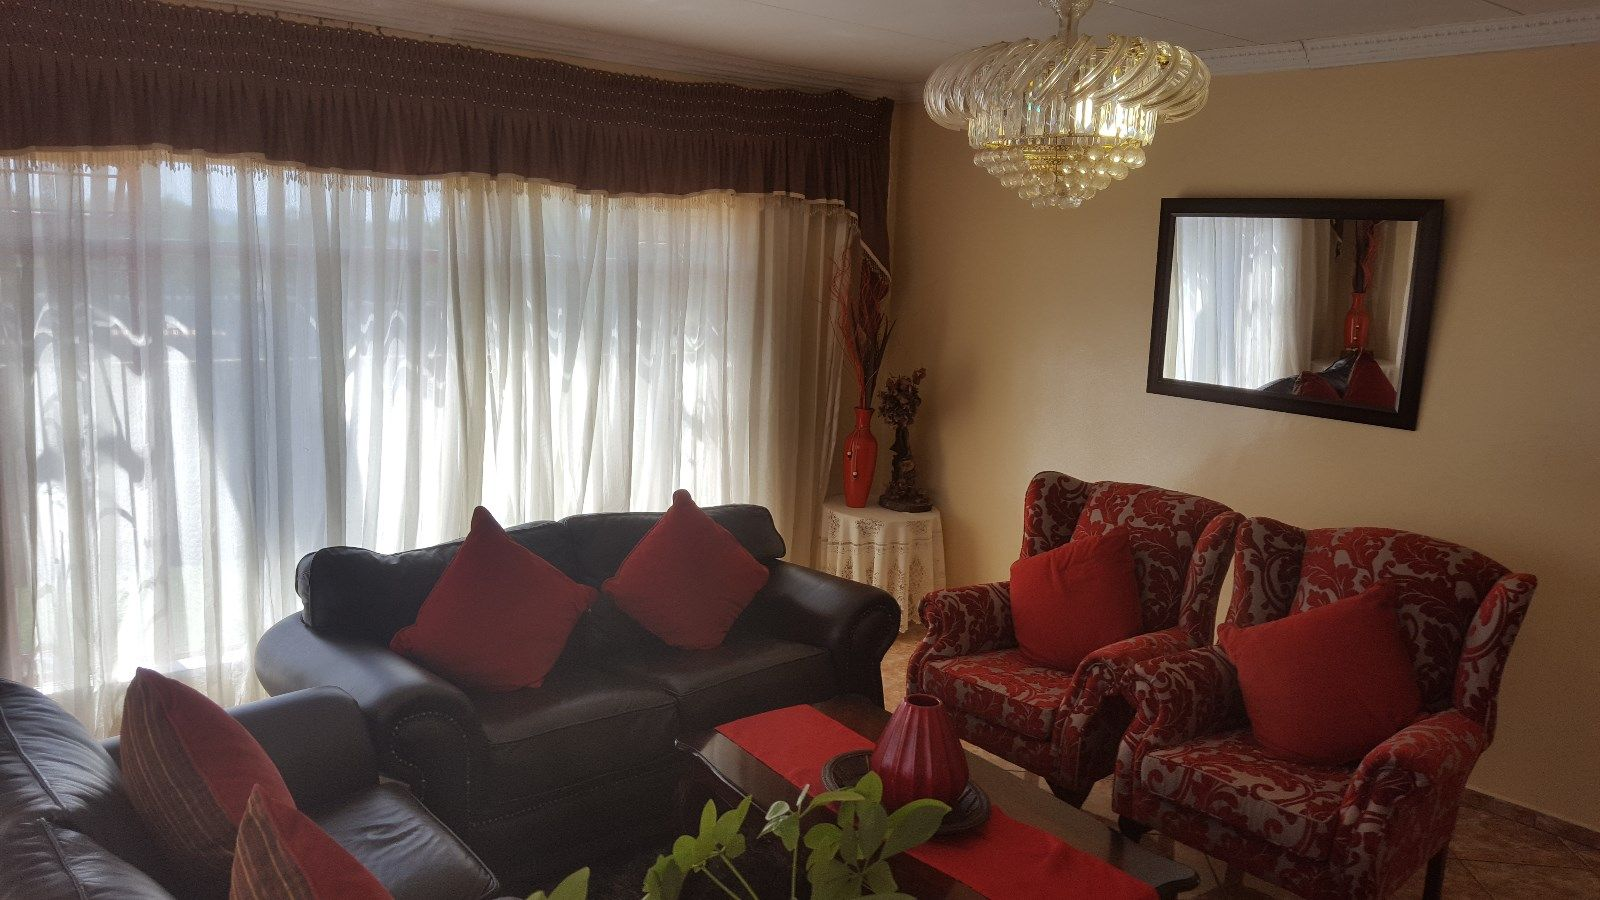 Potchefstroom Central for sale property. Ref No: 13451730. Picture no 9